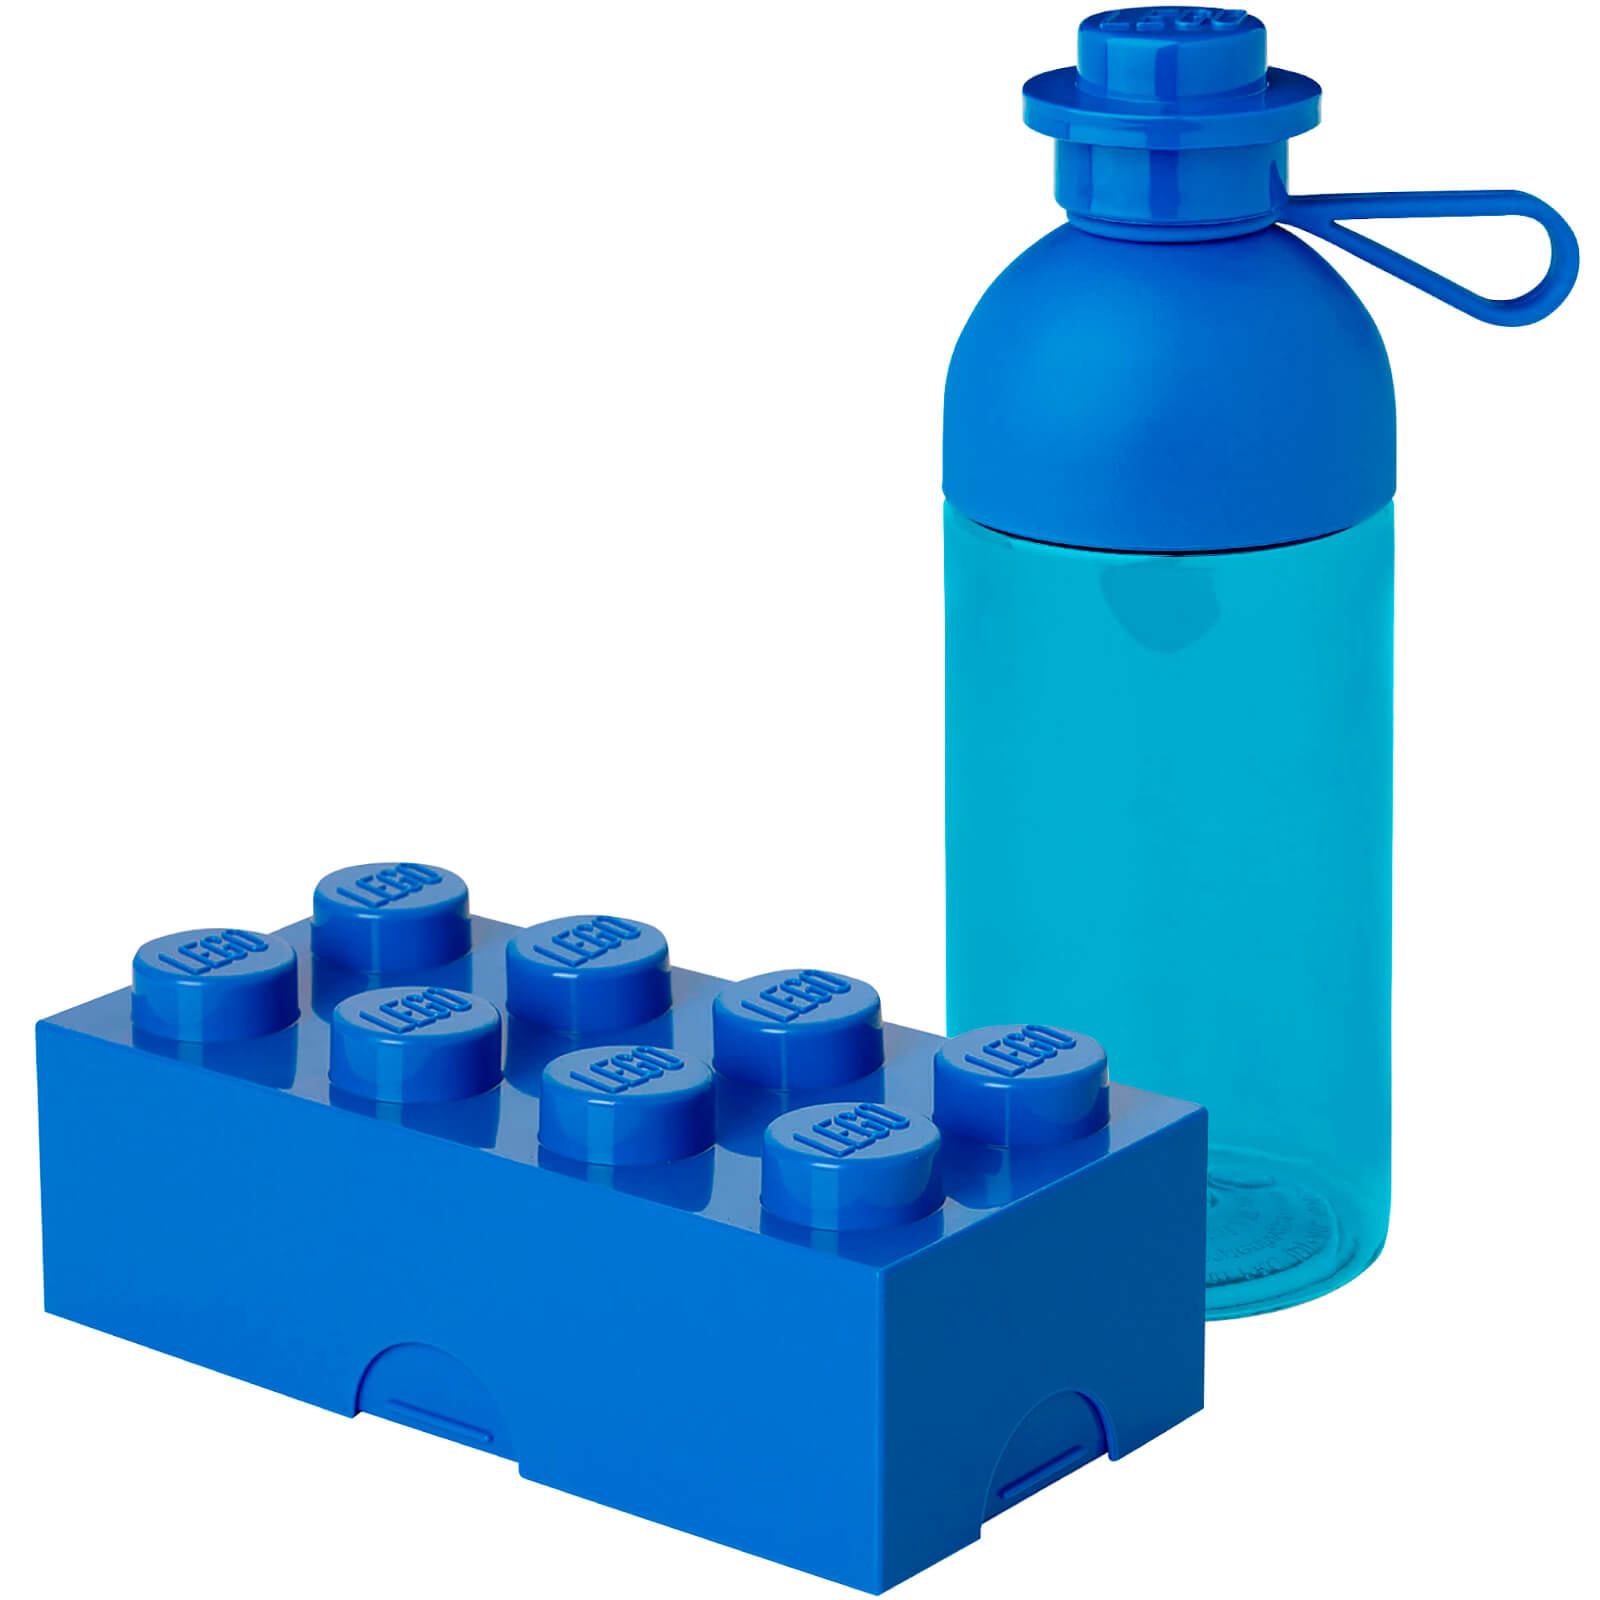 Image of LEGO Storage Blue Lunch Set Bundle (Includes 1 Lunchbox and 1 Hydration Bottle)